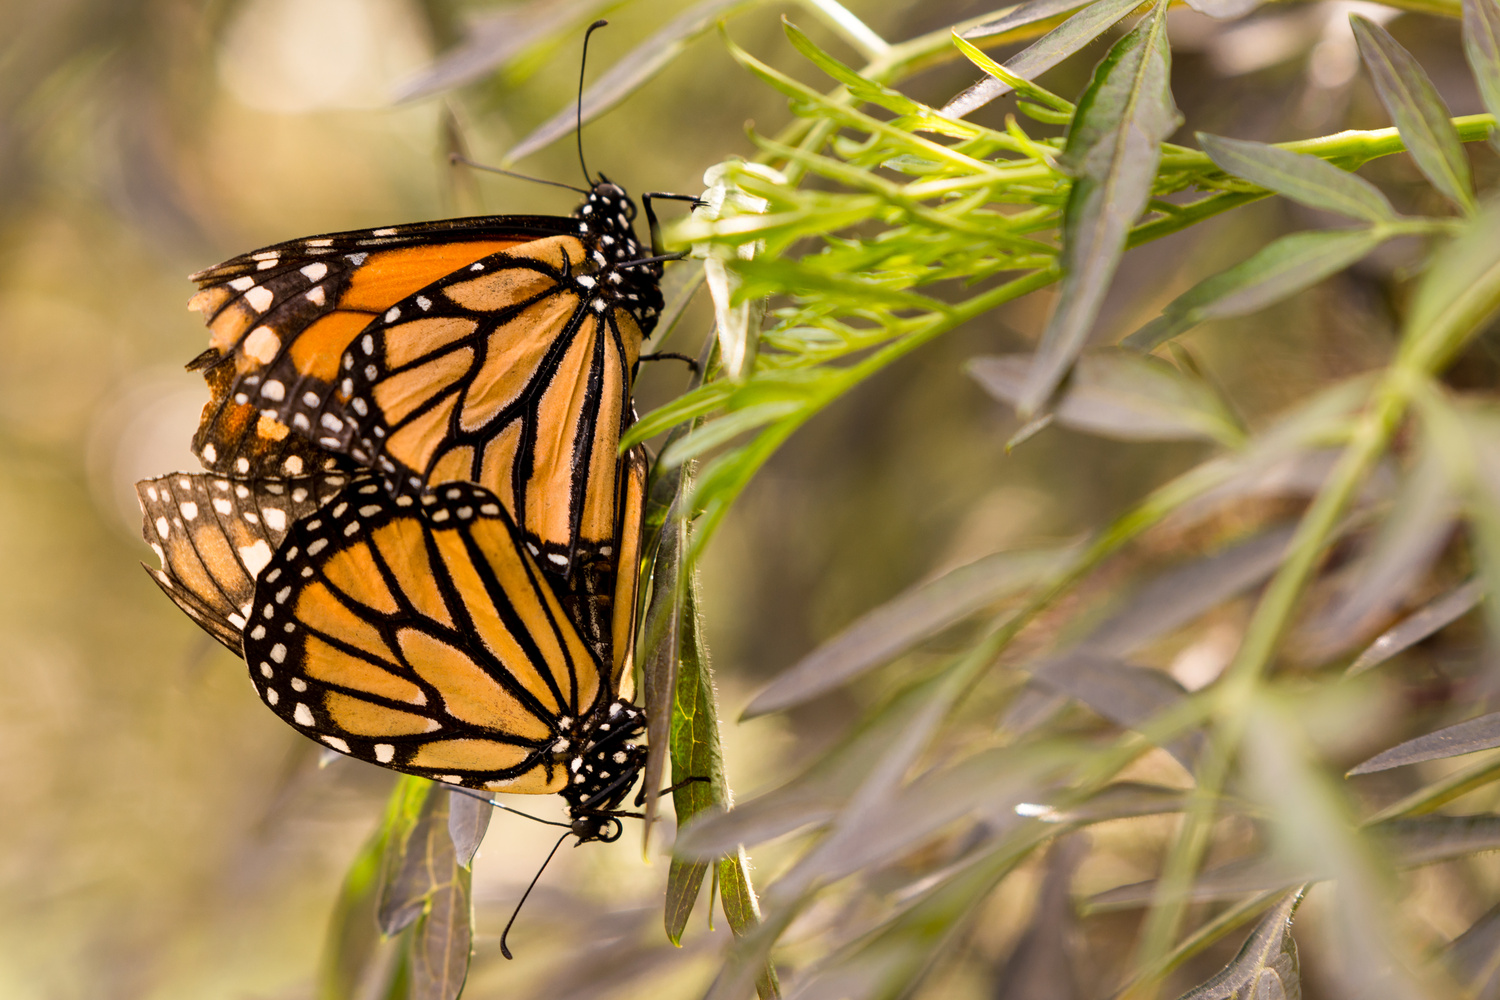 A Butterfly Pair by Kyle Rosenmeyer